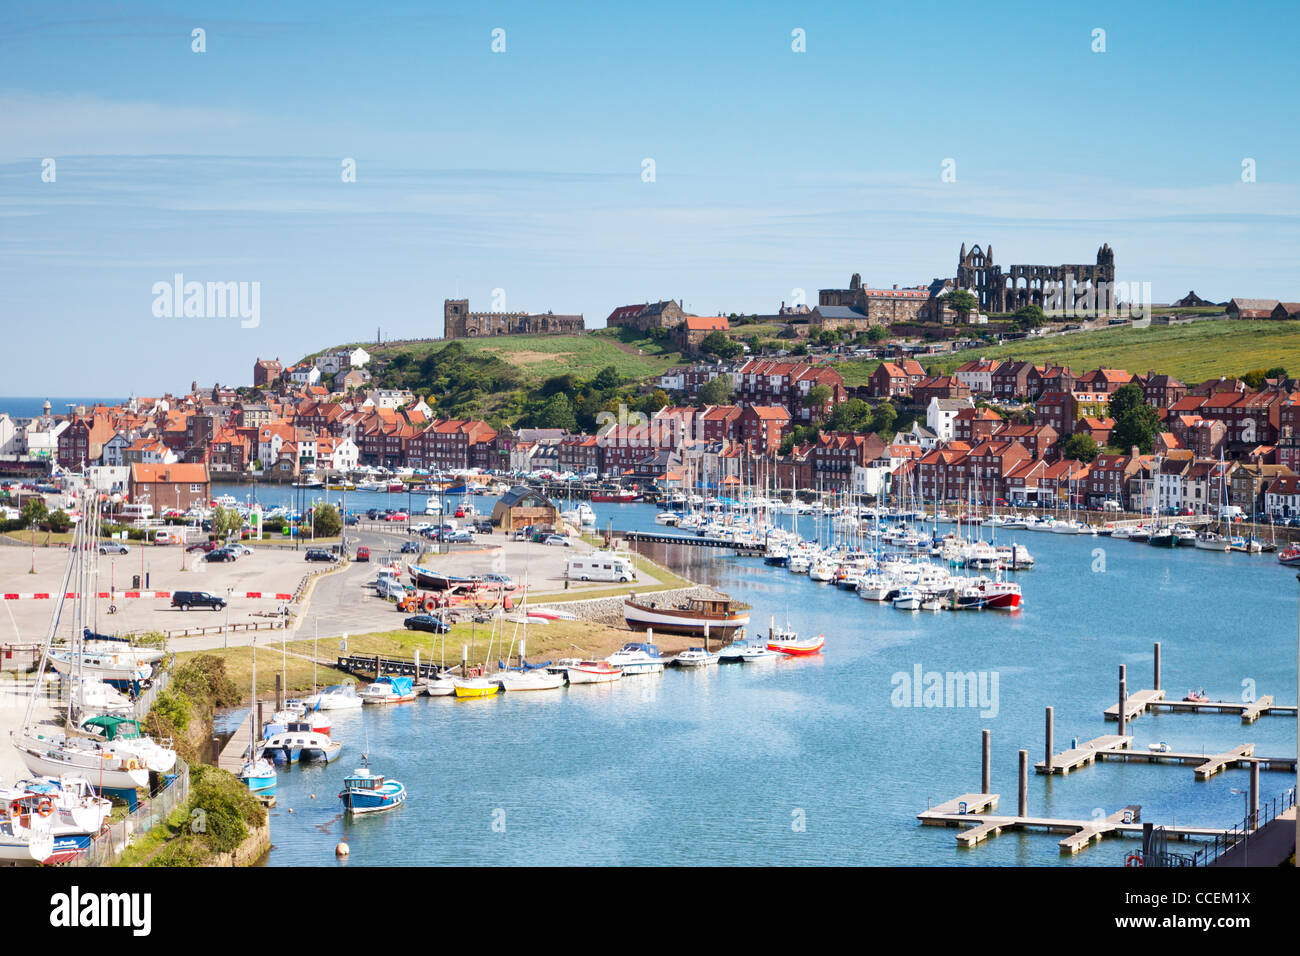 The North Yorkshire seaside town of Whiby, with its Abbey on the headland, the River Esk, and houses clustered around - Stock Image